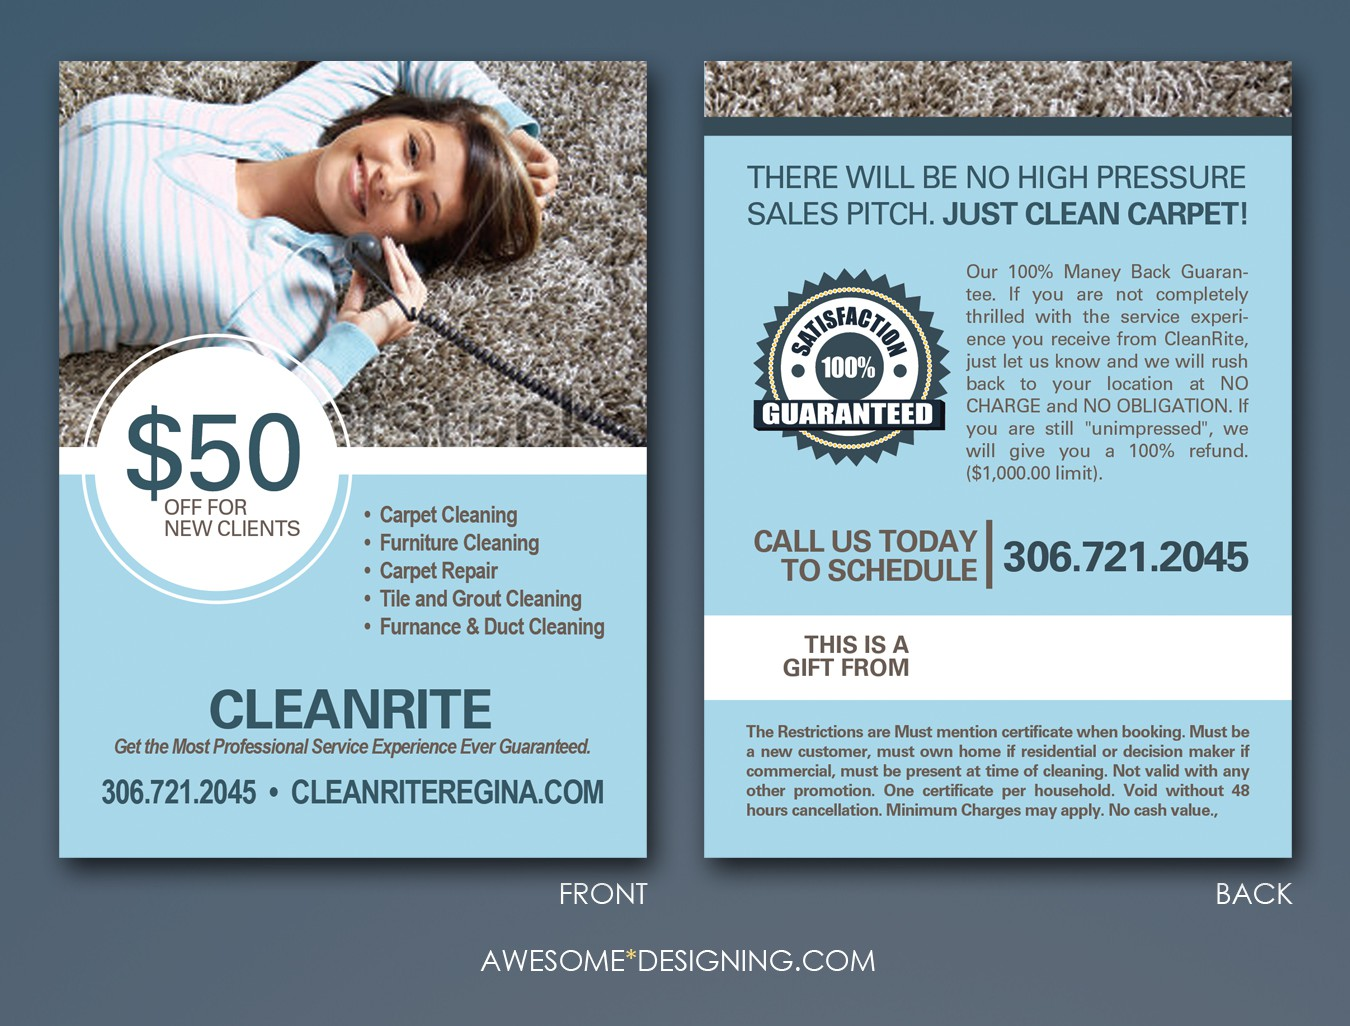 CleanRite needs a new business or advertising